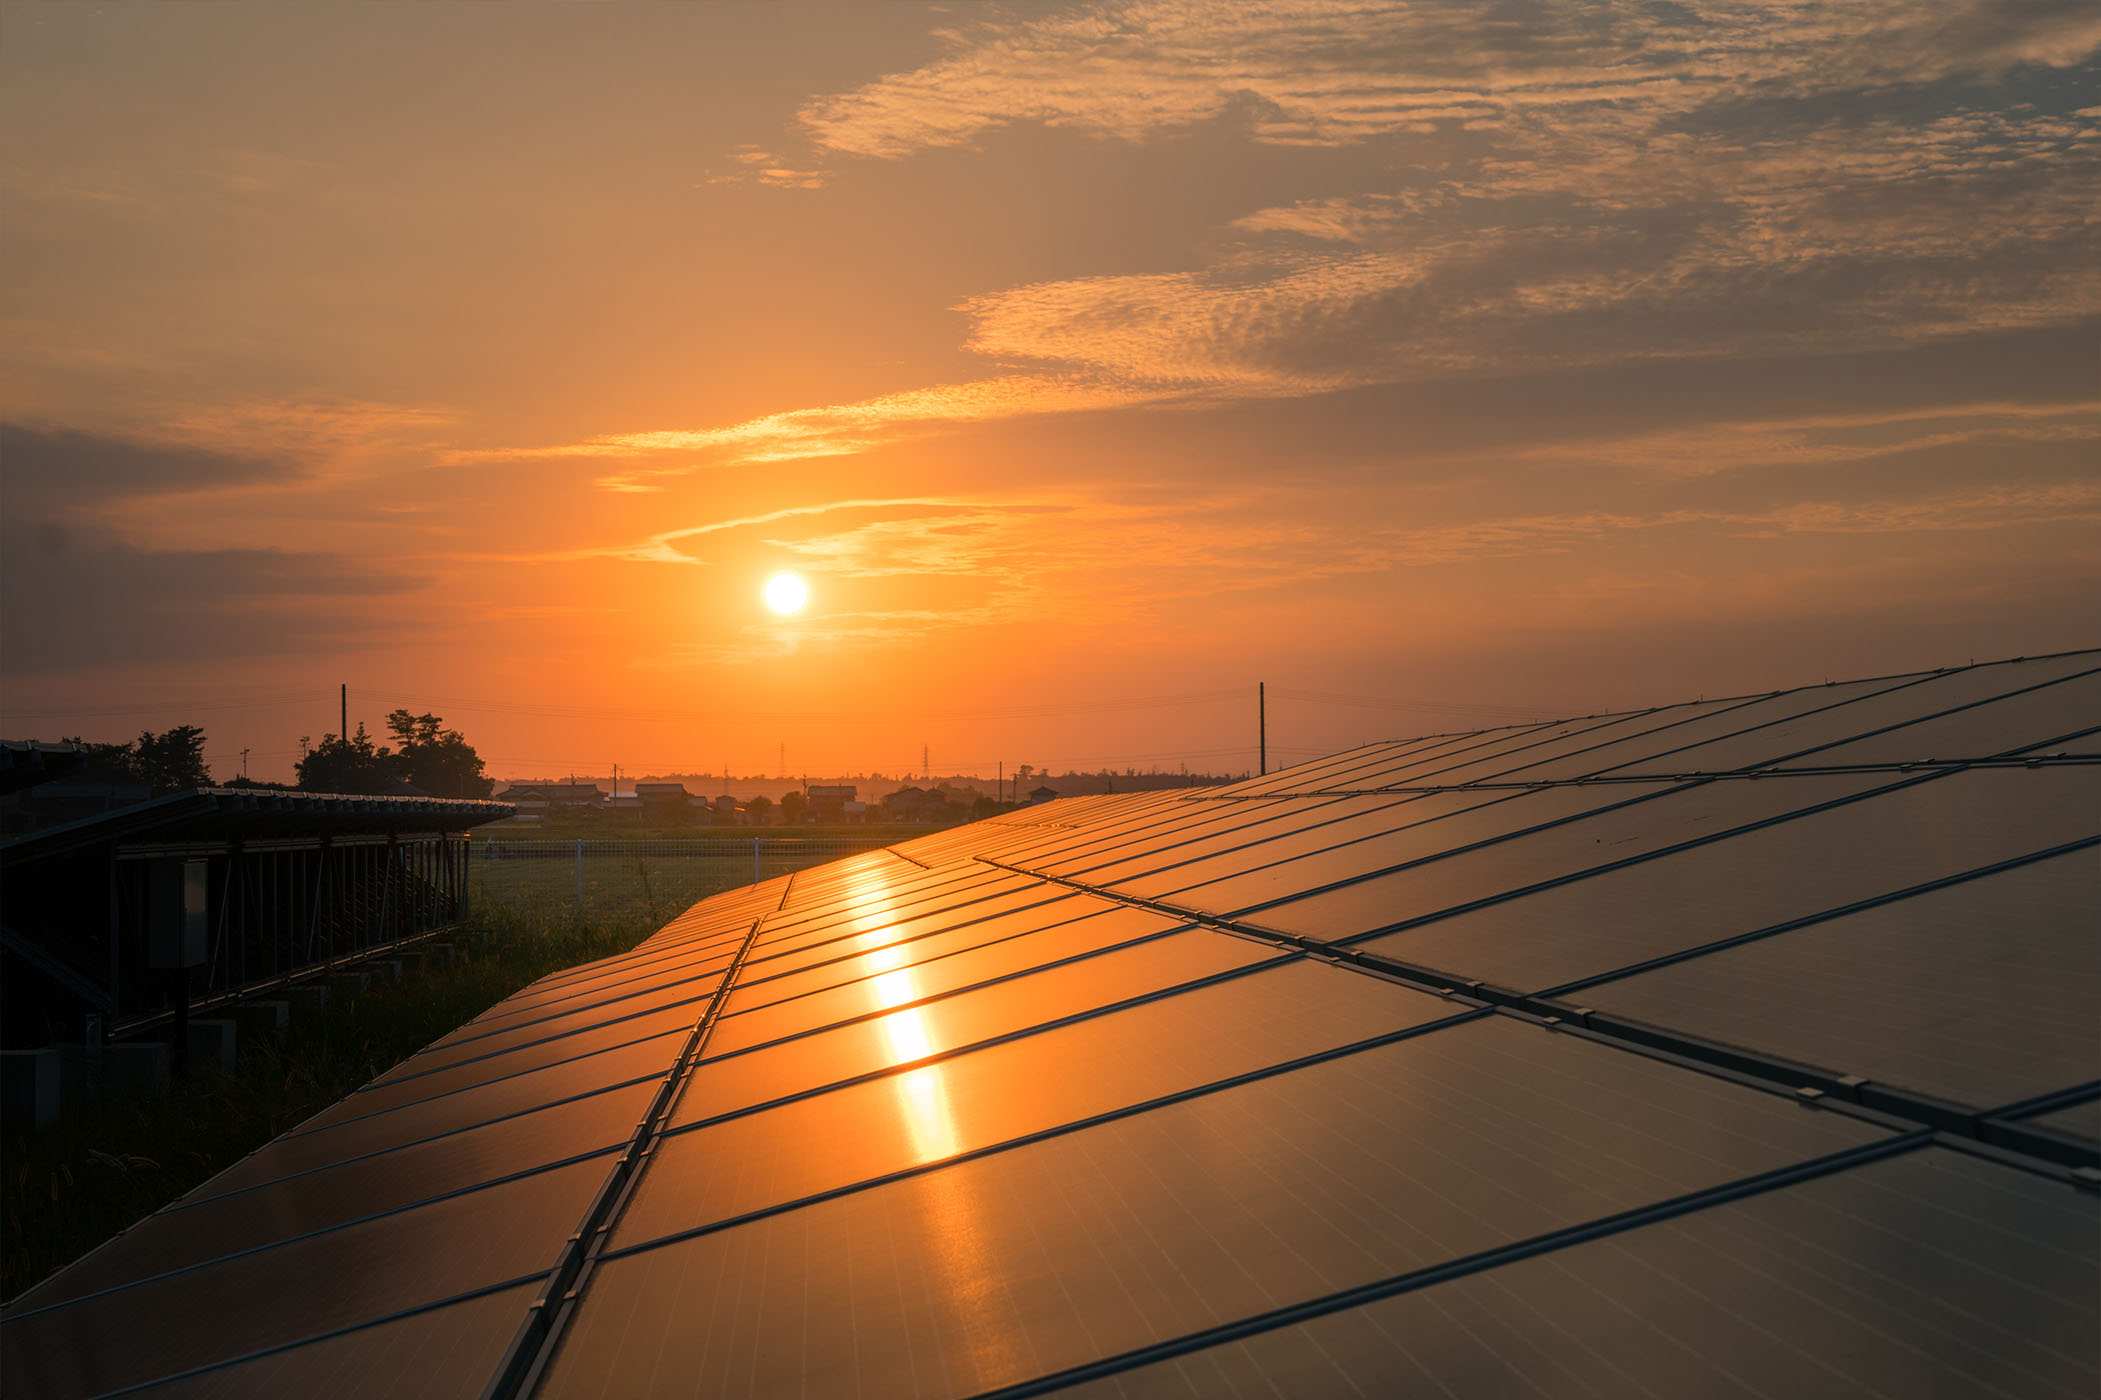 Solar panels by the sunset